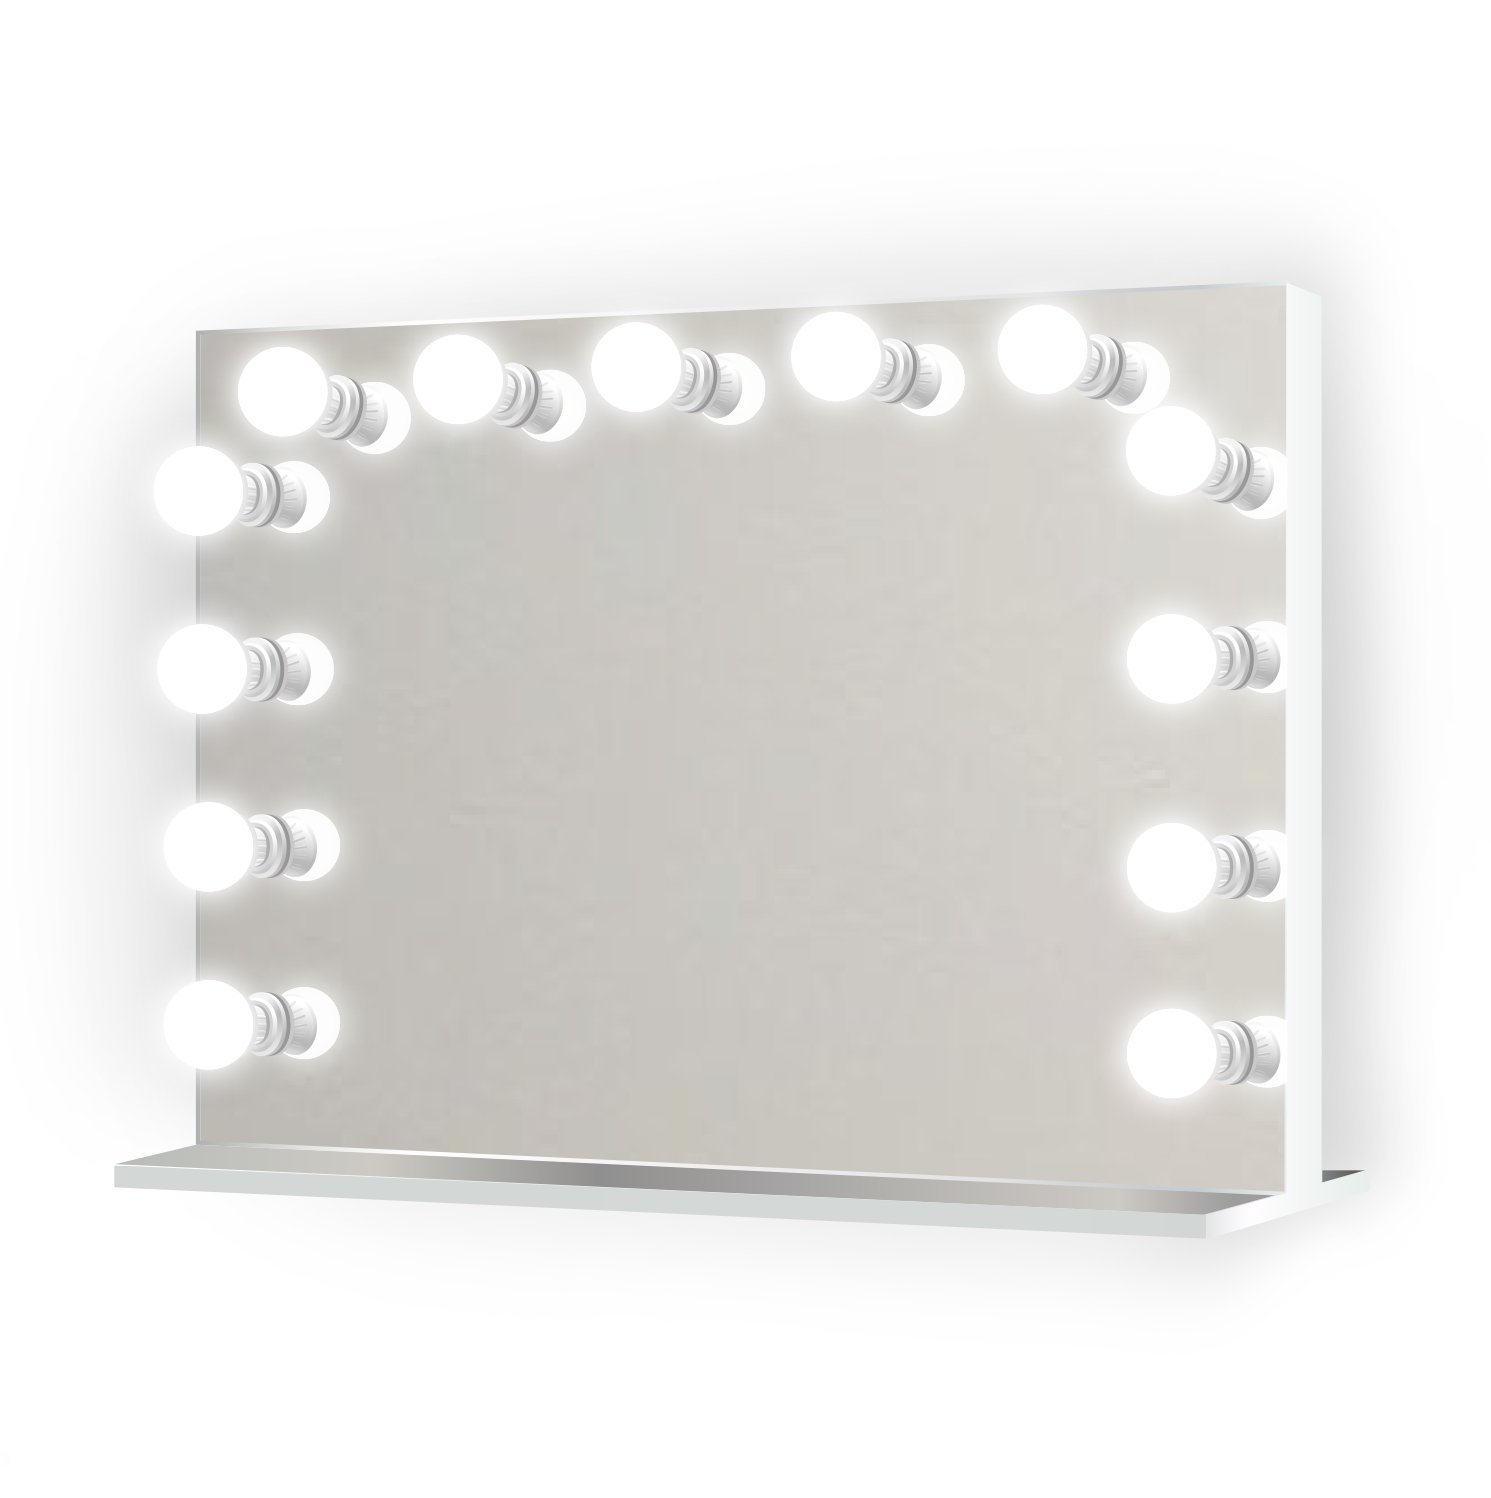 31 inch x 25 inch Lighted Hollywood Vanity Mirror | LED All Mirror - Makeup Mirror | Table Top Or Wall Mount | Plug-in